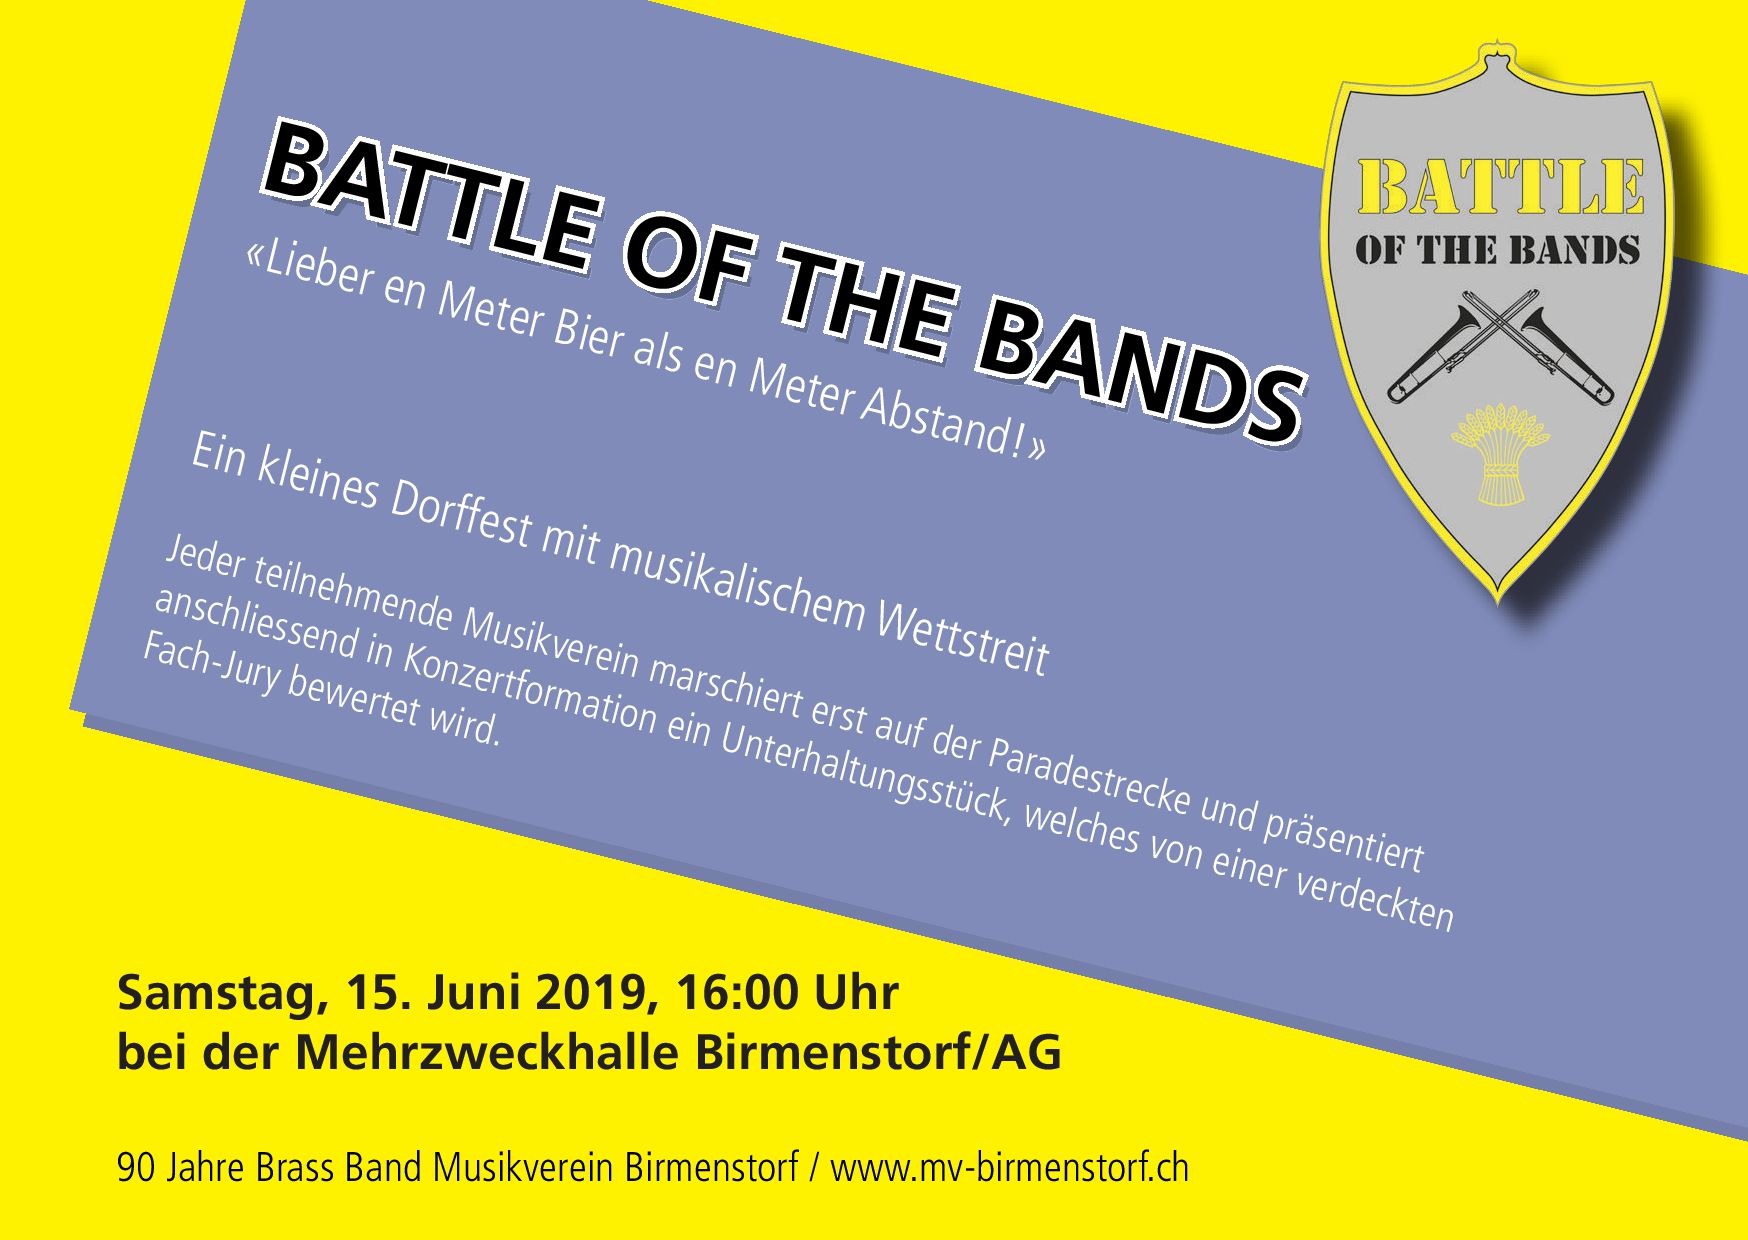 Flyer_April 2019-Battle-of-the-bands_1.jpg